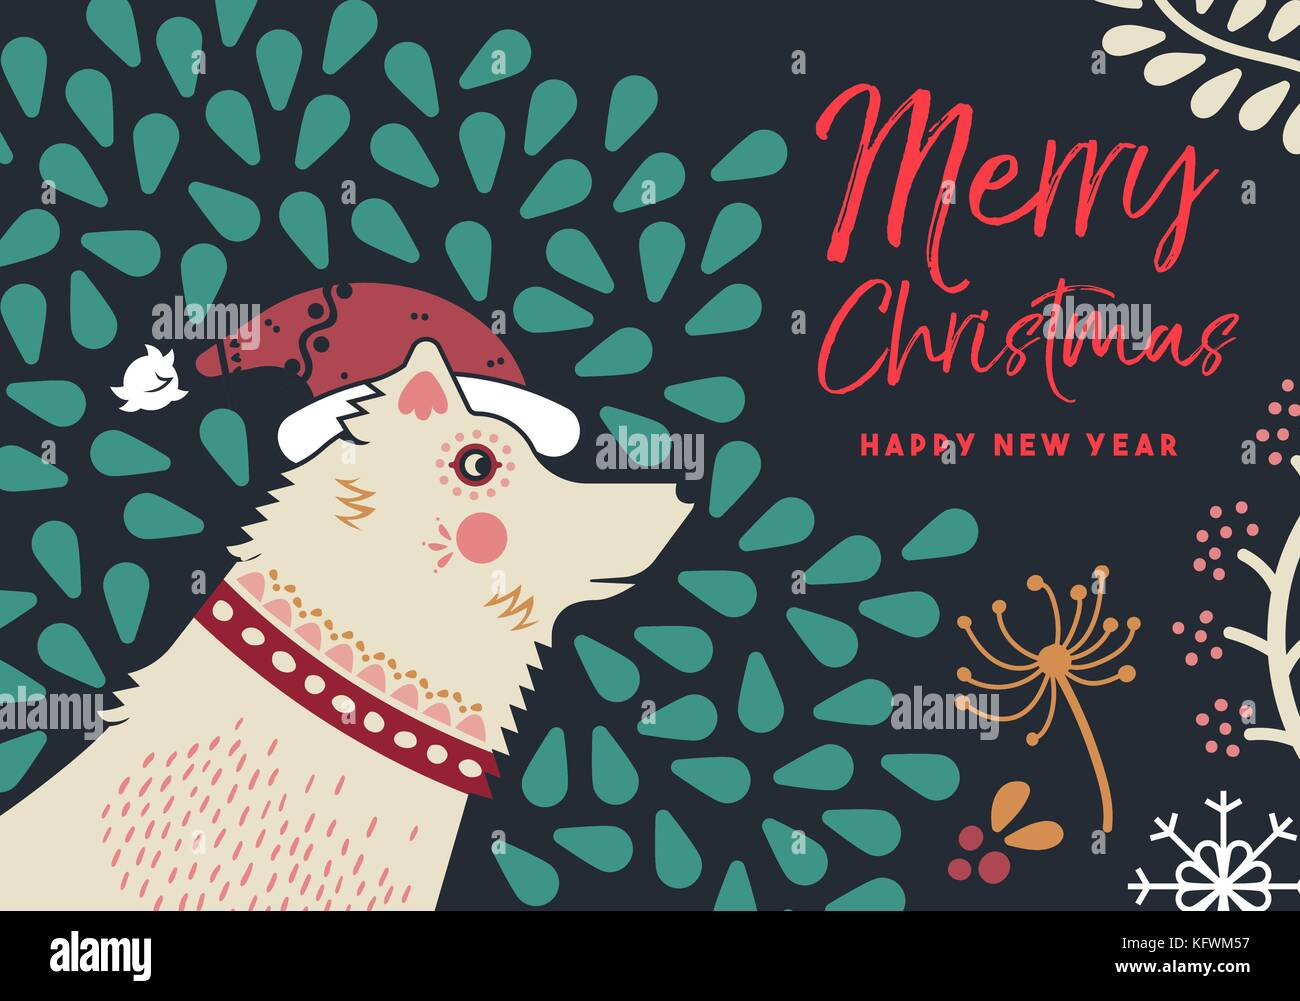 Merry Christmas Happy New Year Holiday Greeting Card Dog Portrait